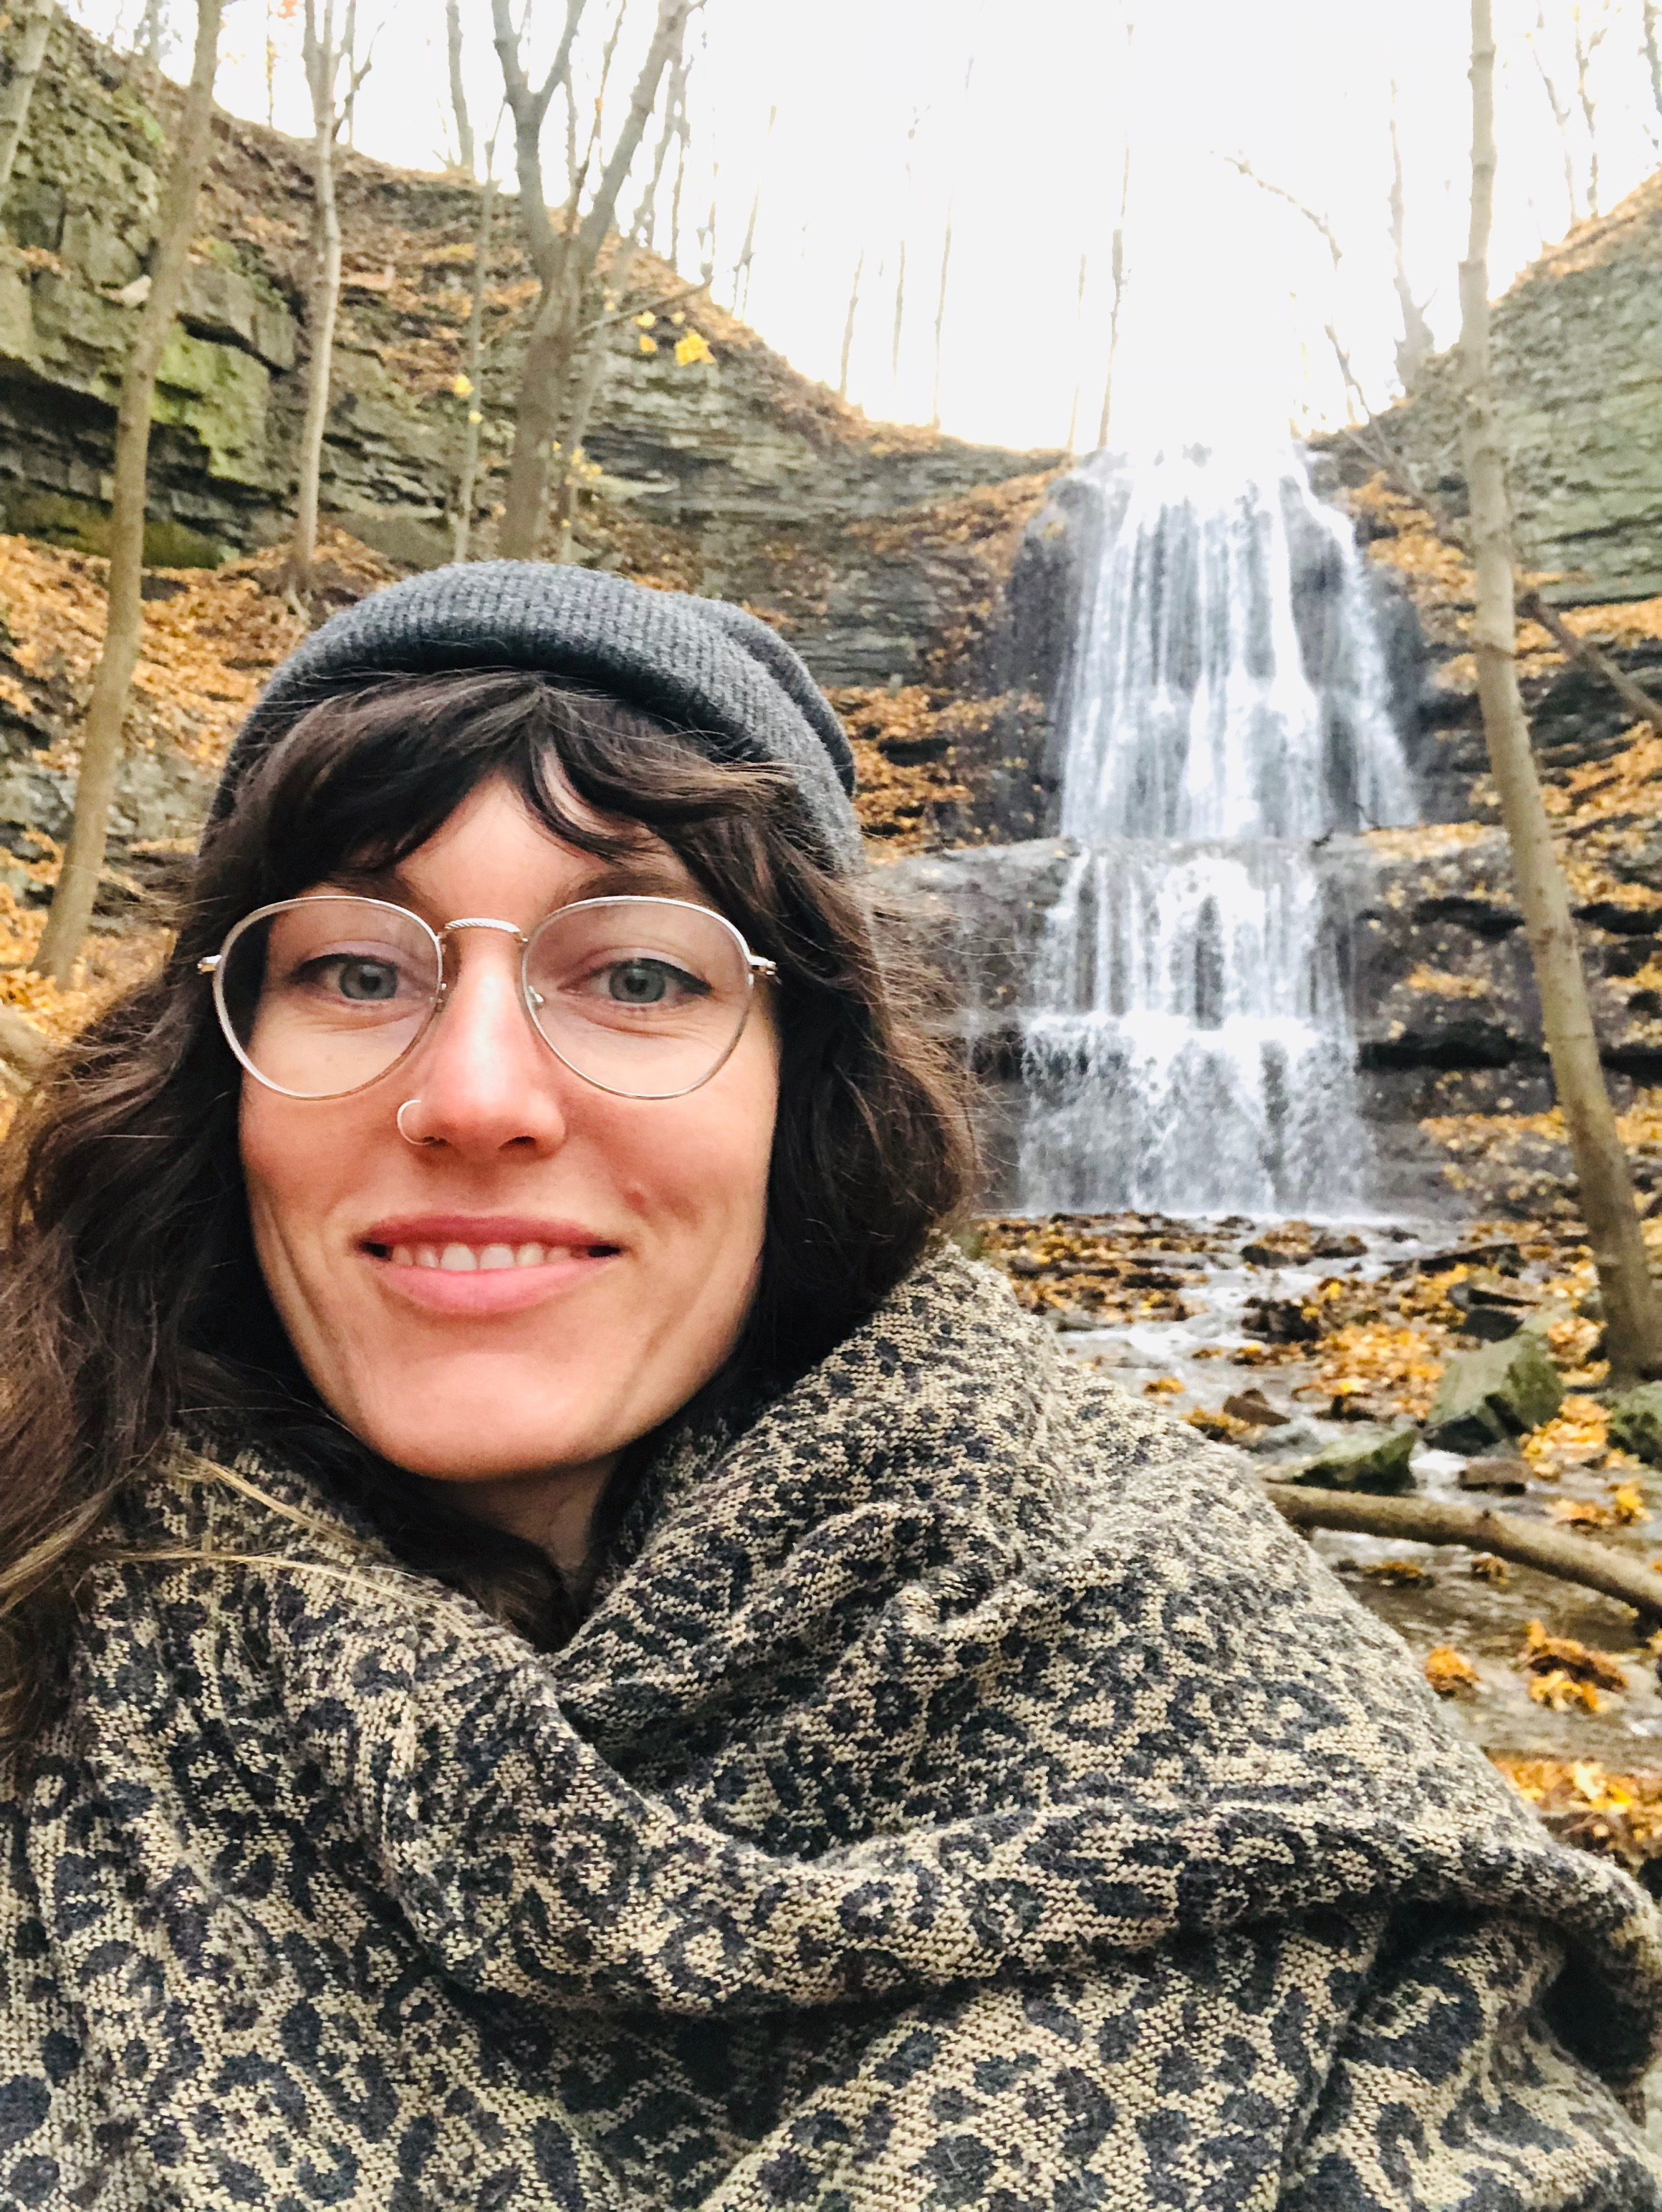 Meet Your Guide - Carly Joynt is the Toronto Coordinator of Active Days Program. She is a passionate mentor who loves connecting people with nature through the senses! Carly's favourite Parkbus route is to see the waterfalls of the Dundas Valley and her most memorable nature moment was tracking a Great Horned owl through a cedar forest!